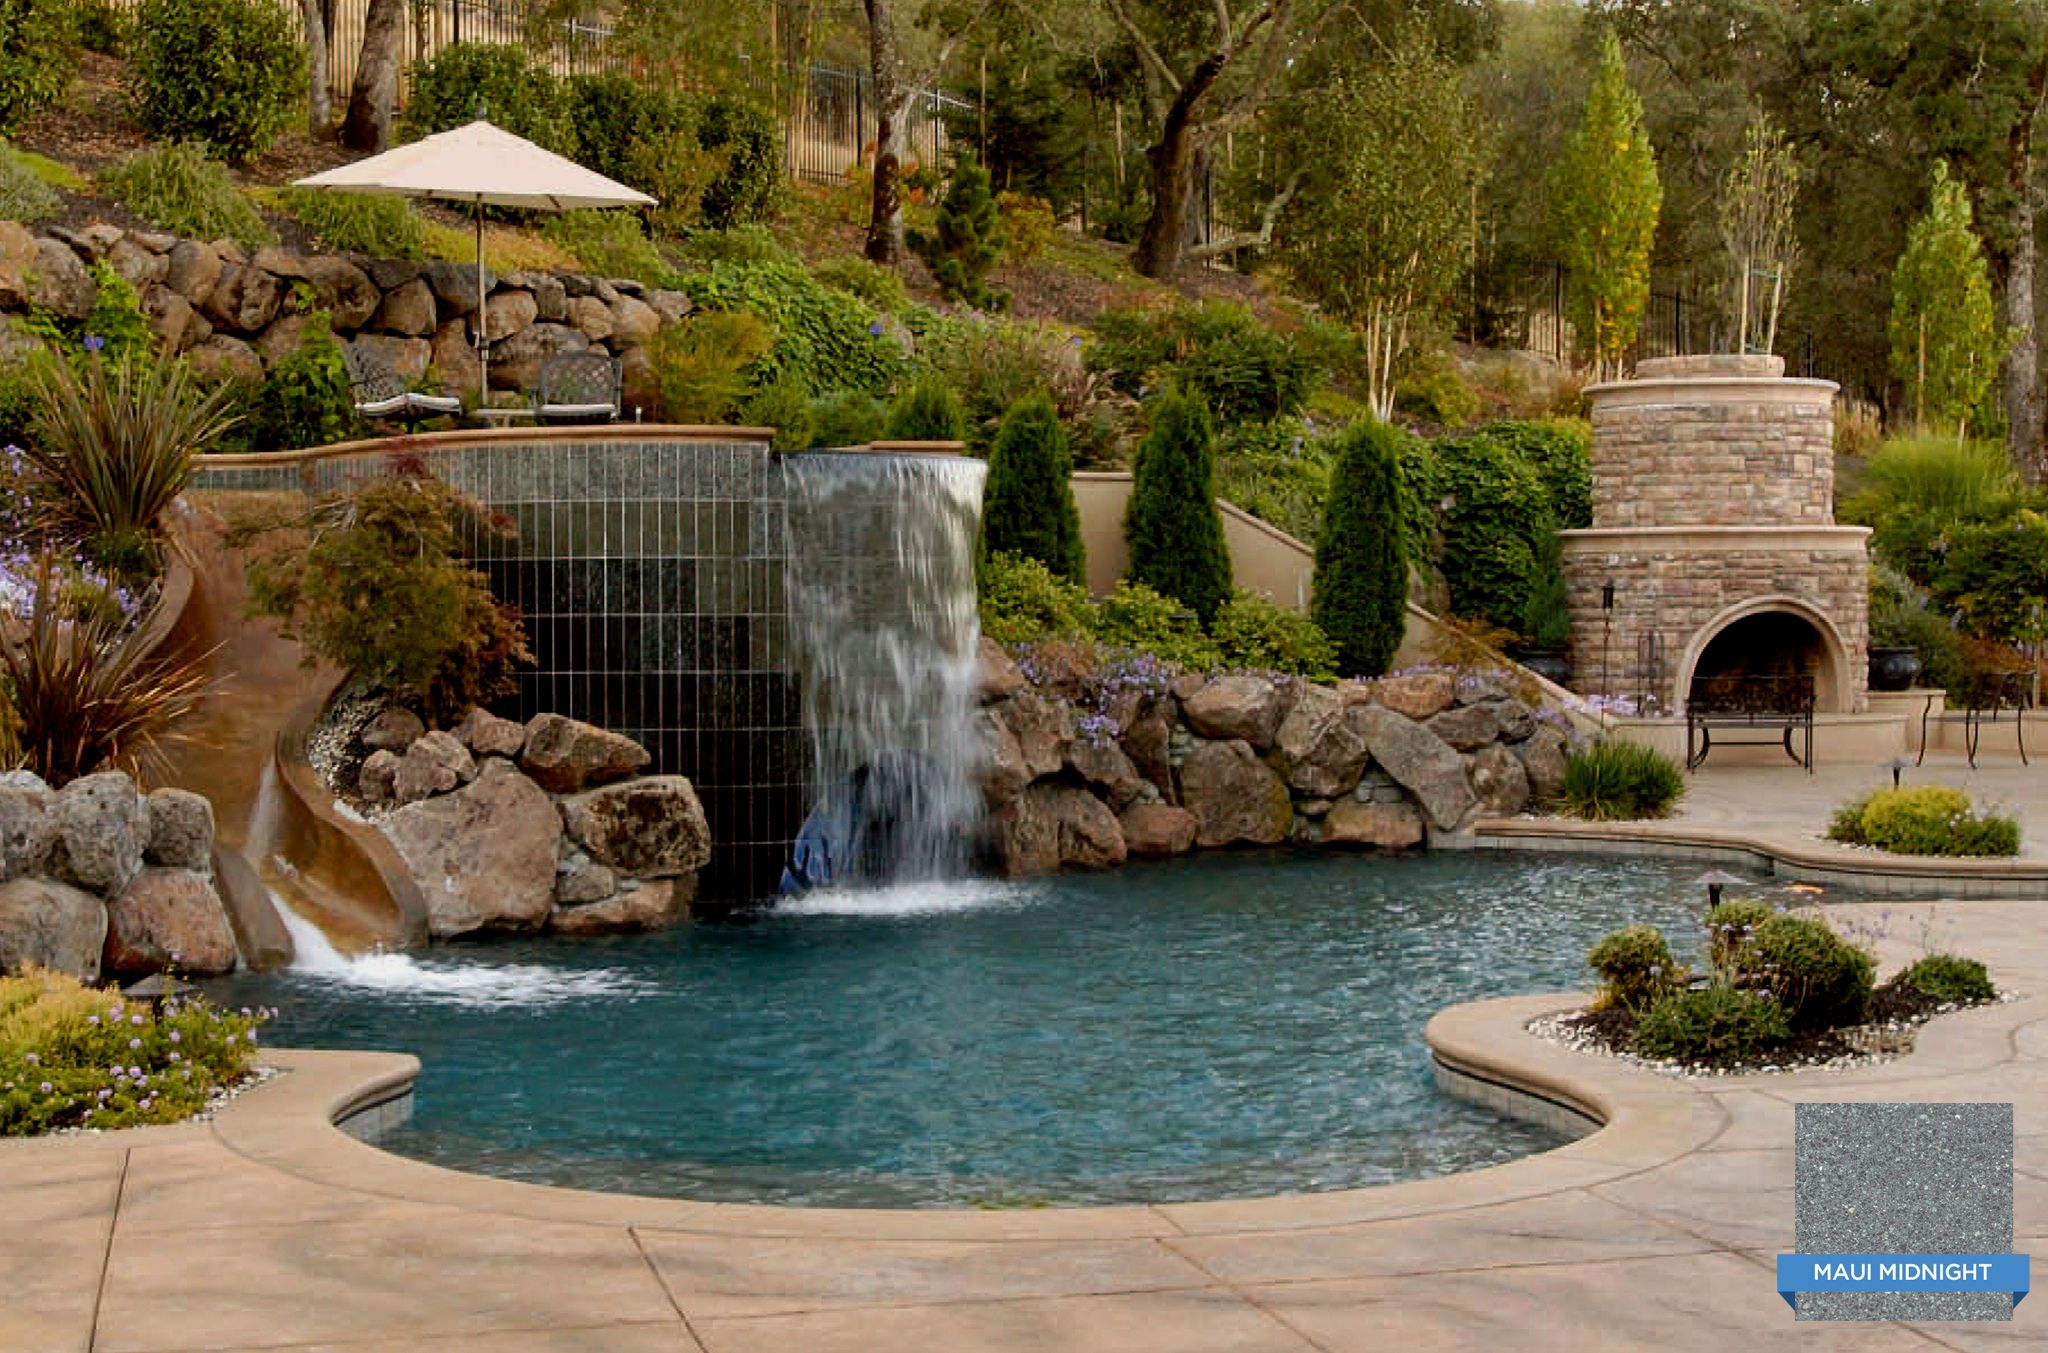 Hydrazzo Maui Midnight In This Lush Swimming Pool Provides The Right Mix Of Elegance And Deep Wa Swimming Pool Pictures Swimming Pool Galleries Pool Renovation